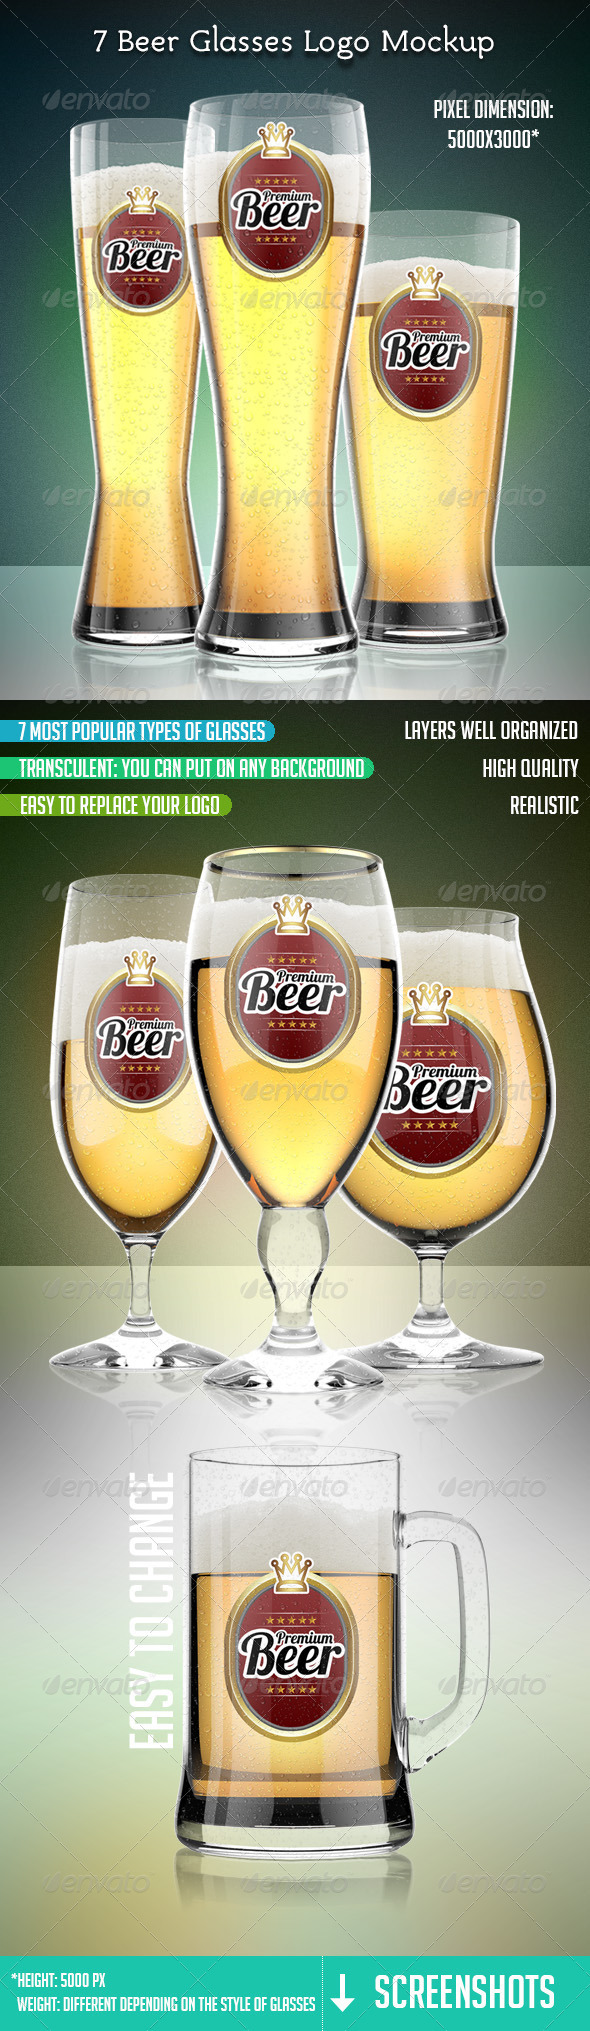 7 Beer Glasses Logo Mock-Up - Logo Product Mock-Ups